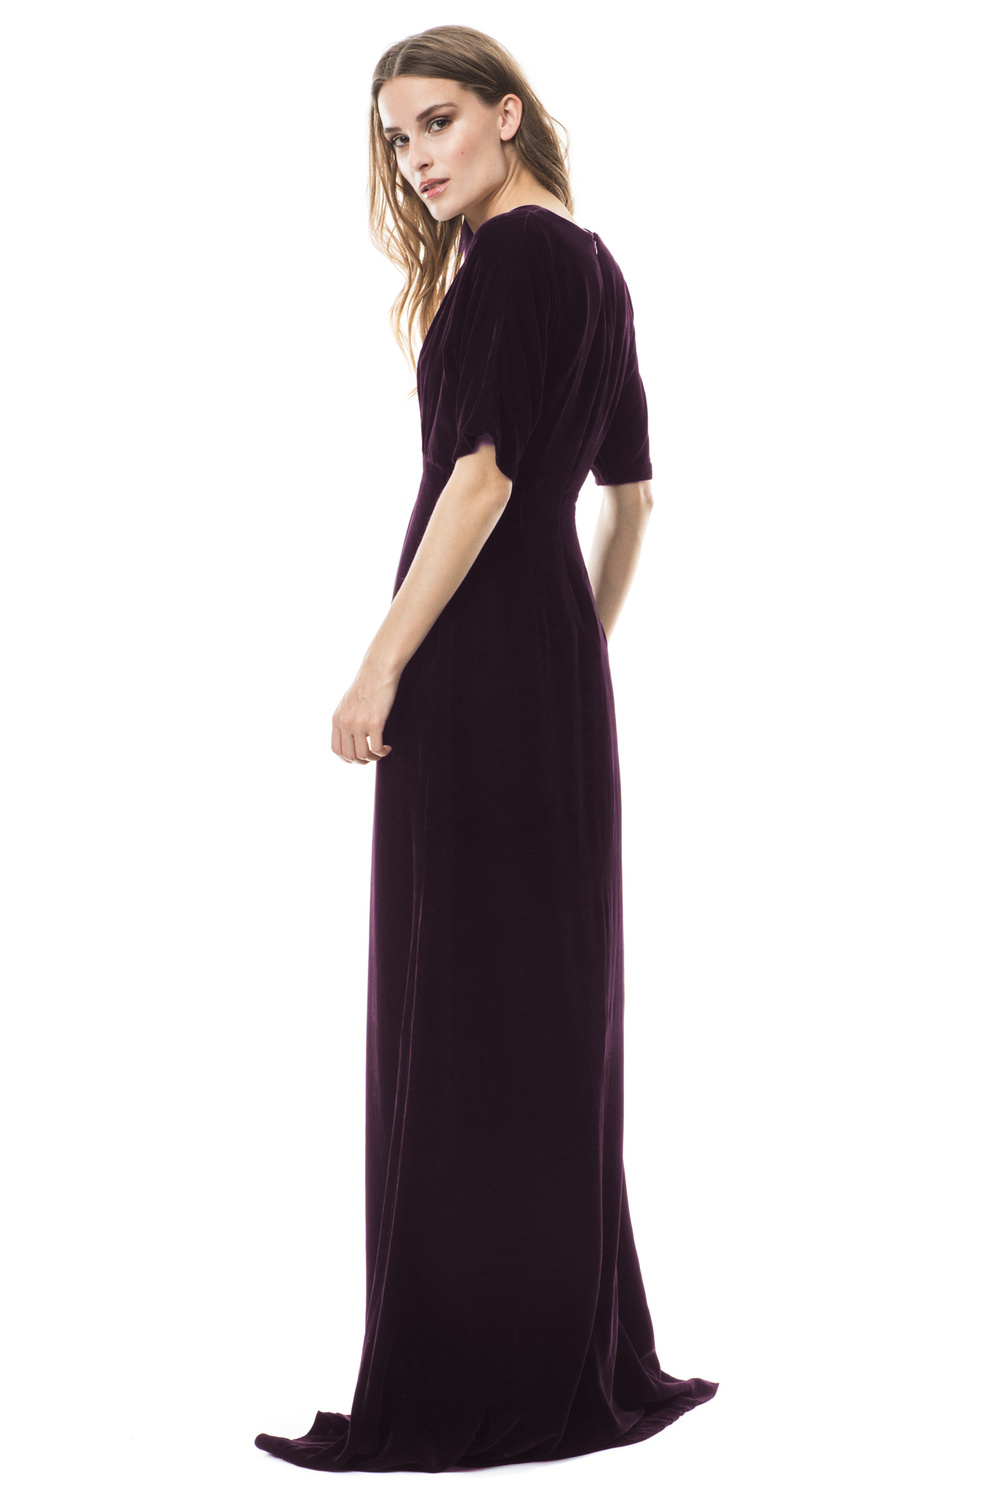 Hedda maxi dress